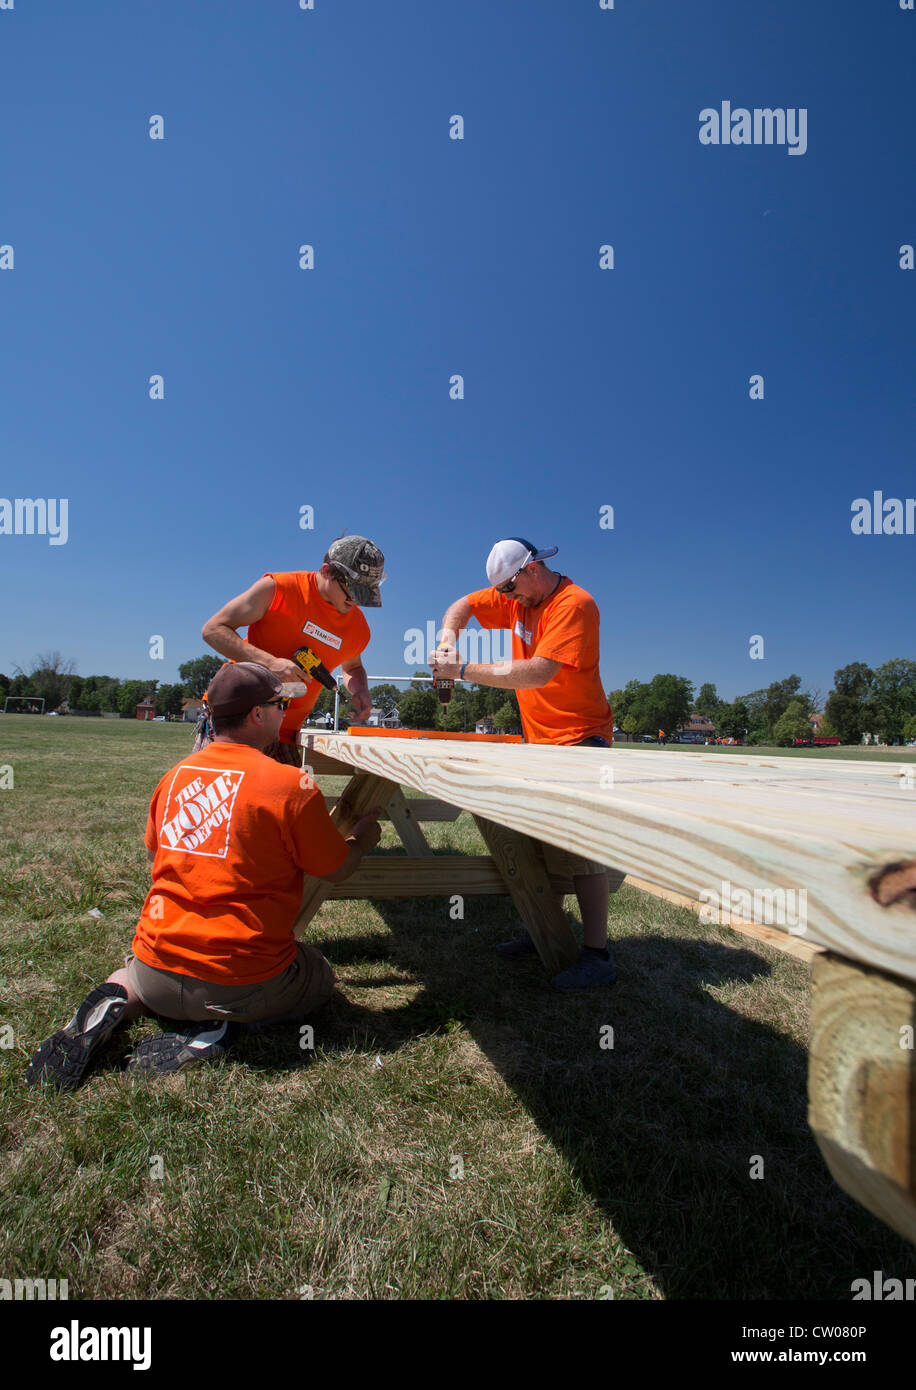 Detroit, Michigan - Volunteers from Home Depot build picnic tables on home depot springfield mo, home depot highlands ranch, home depot vallejo, home depot colorado springs, home depot glendale, home depot thunder bay, home depot idaho falls, home depot bonita springs, home depot beaverton, home depot lompoc, home depot scottsdale, home depot pomona, home depot corvallis, home depot overland park, home depot sacramento, home depot chesapeake, home depot santa clara, home depot oxnard, home depot provo, home depot cincinnati,